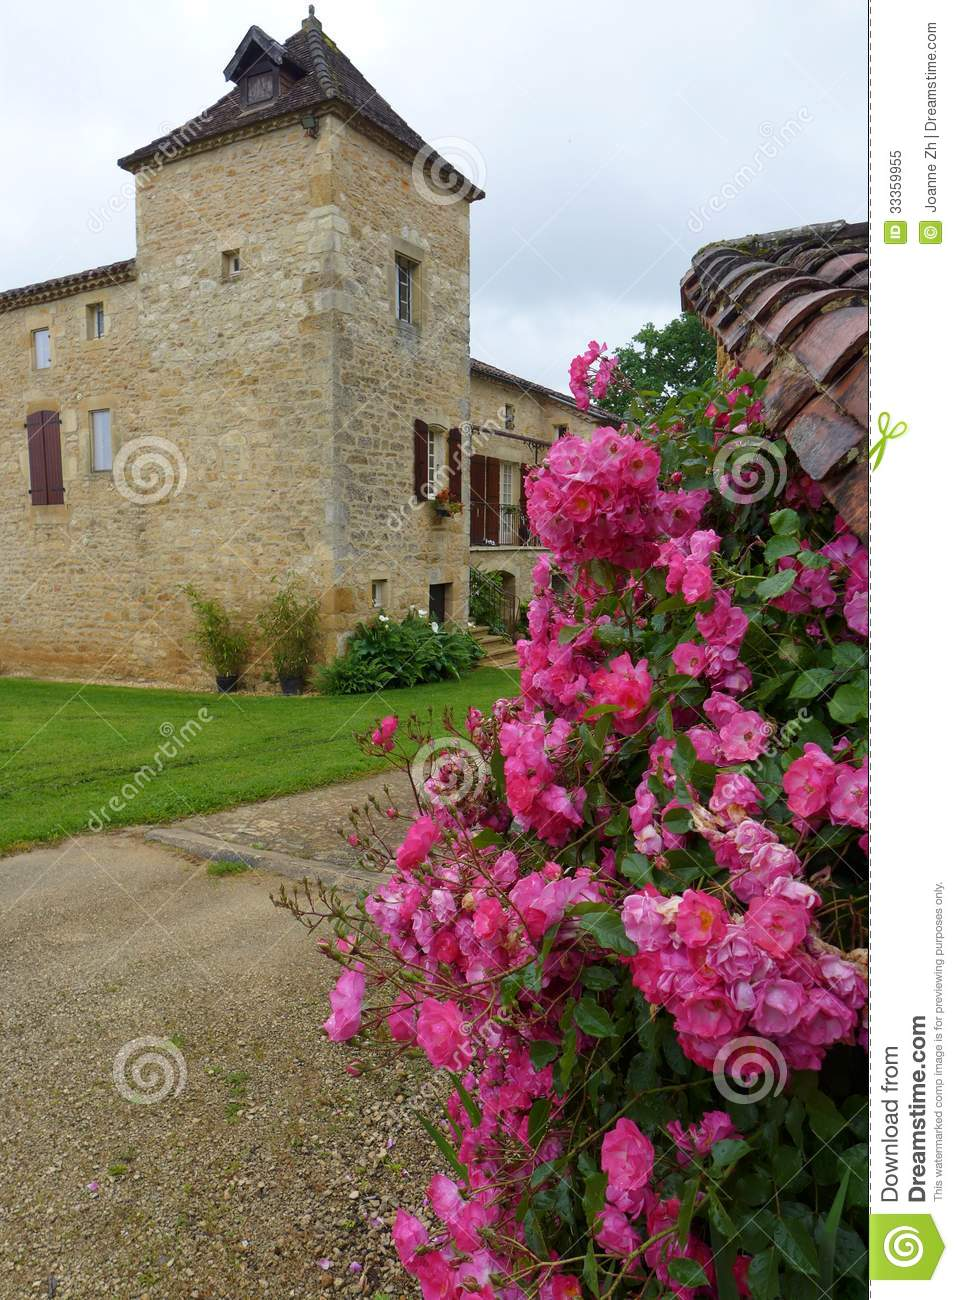 Antique style stone house france royalty free stock photo for Style stone